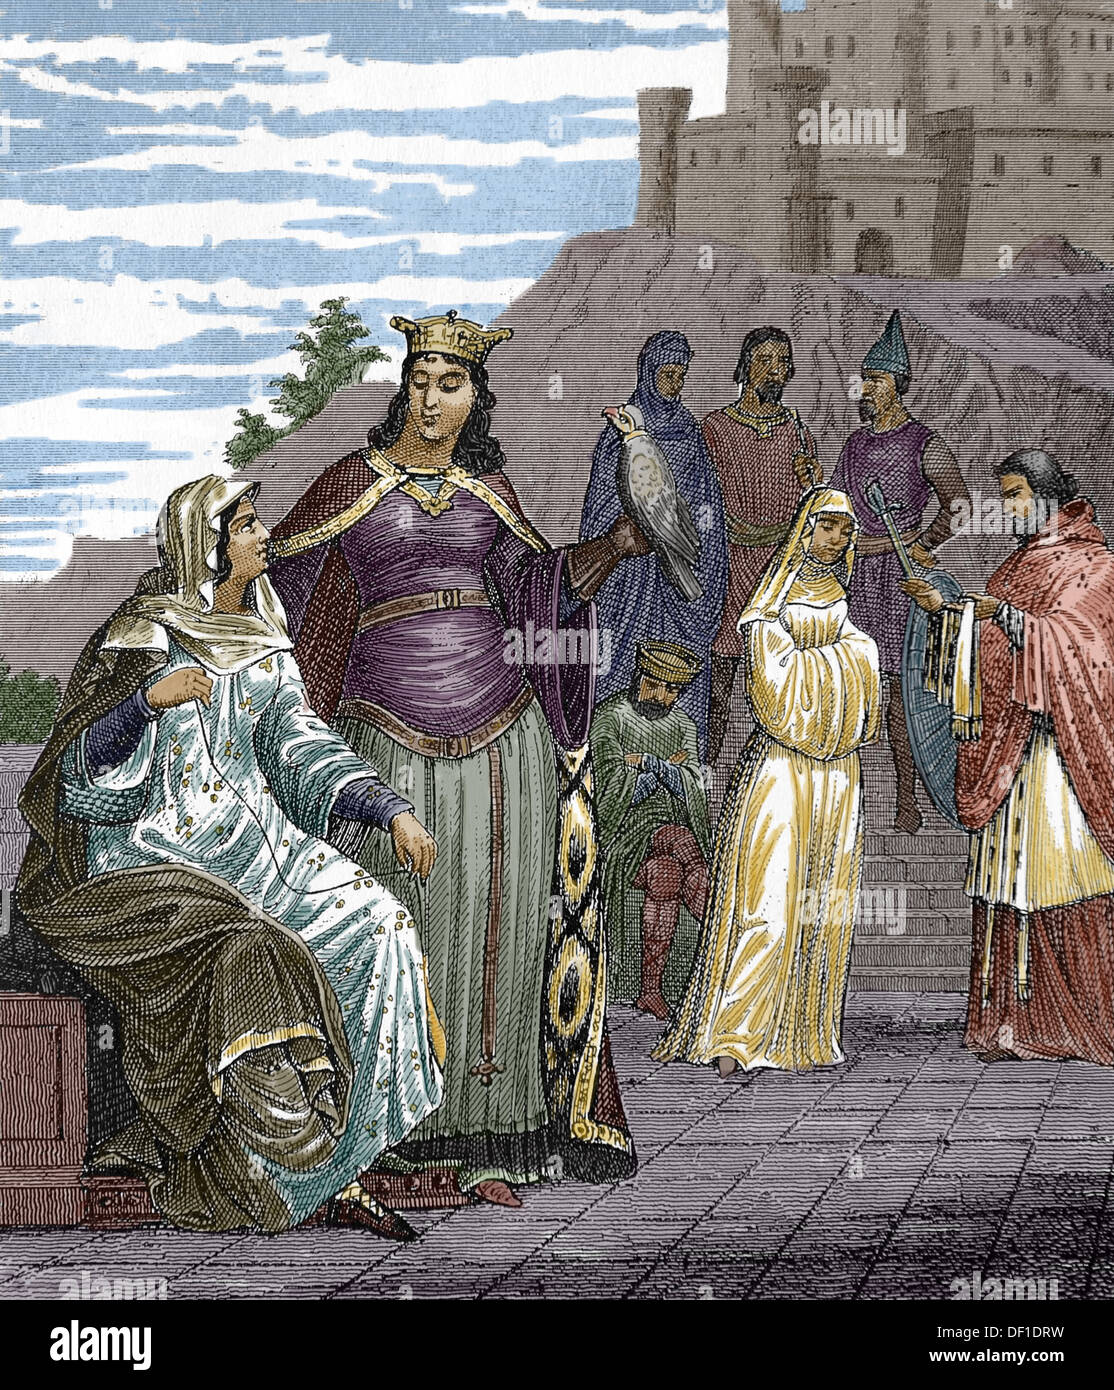 History. Middle Ages. Frankia or Kingdom of the Franks. Frankish king, queen, and princes. Engraving. (Later colouration). - Stock Image